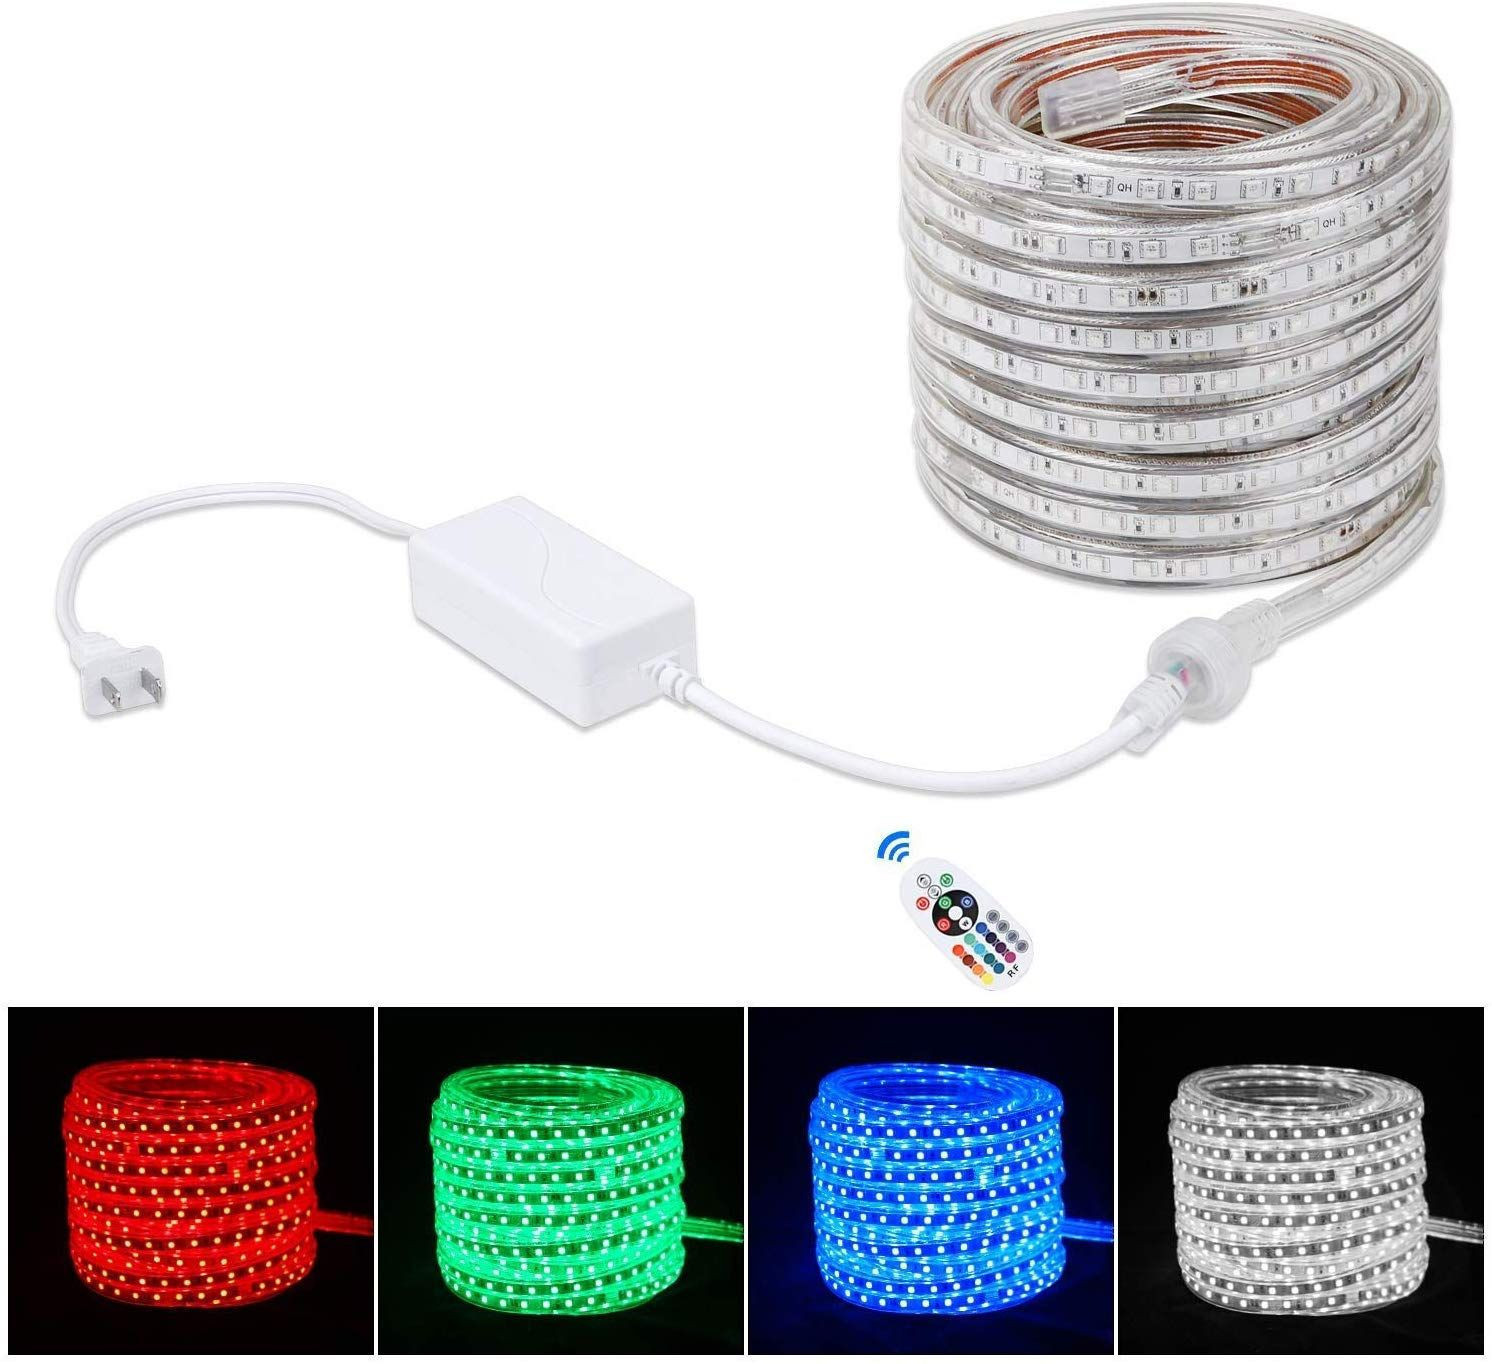 Flexible LED RGB Rope Light Strip, Multi Color Changing SMD 5050 LEDs, 110-120V AC, Dimmable, Waterproof, Indoor/Outdoor Rope Lighting + Remote Controller - (20m/65.6ft)